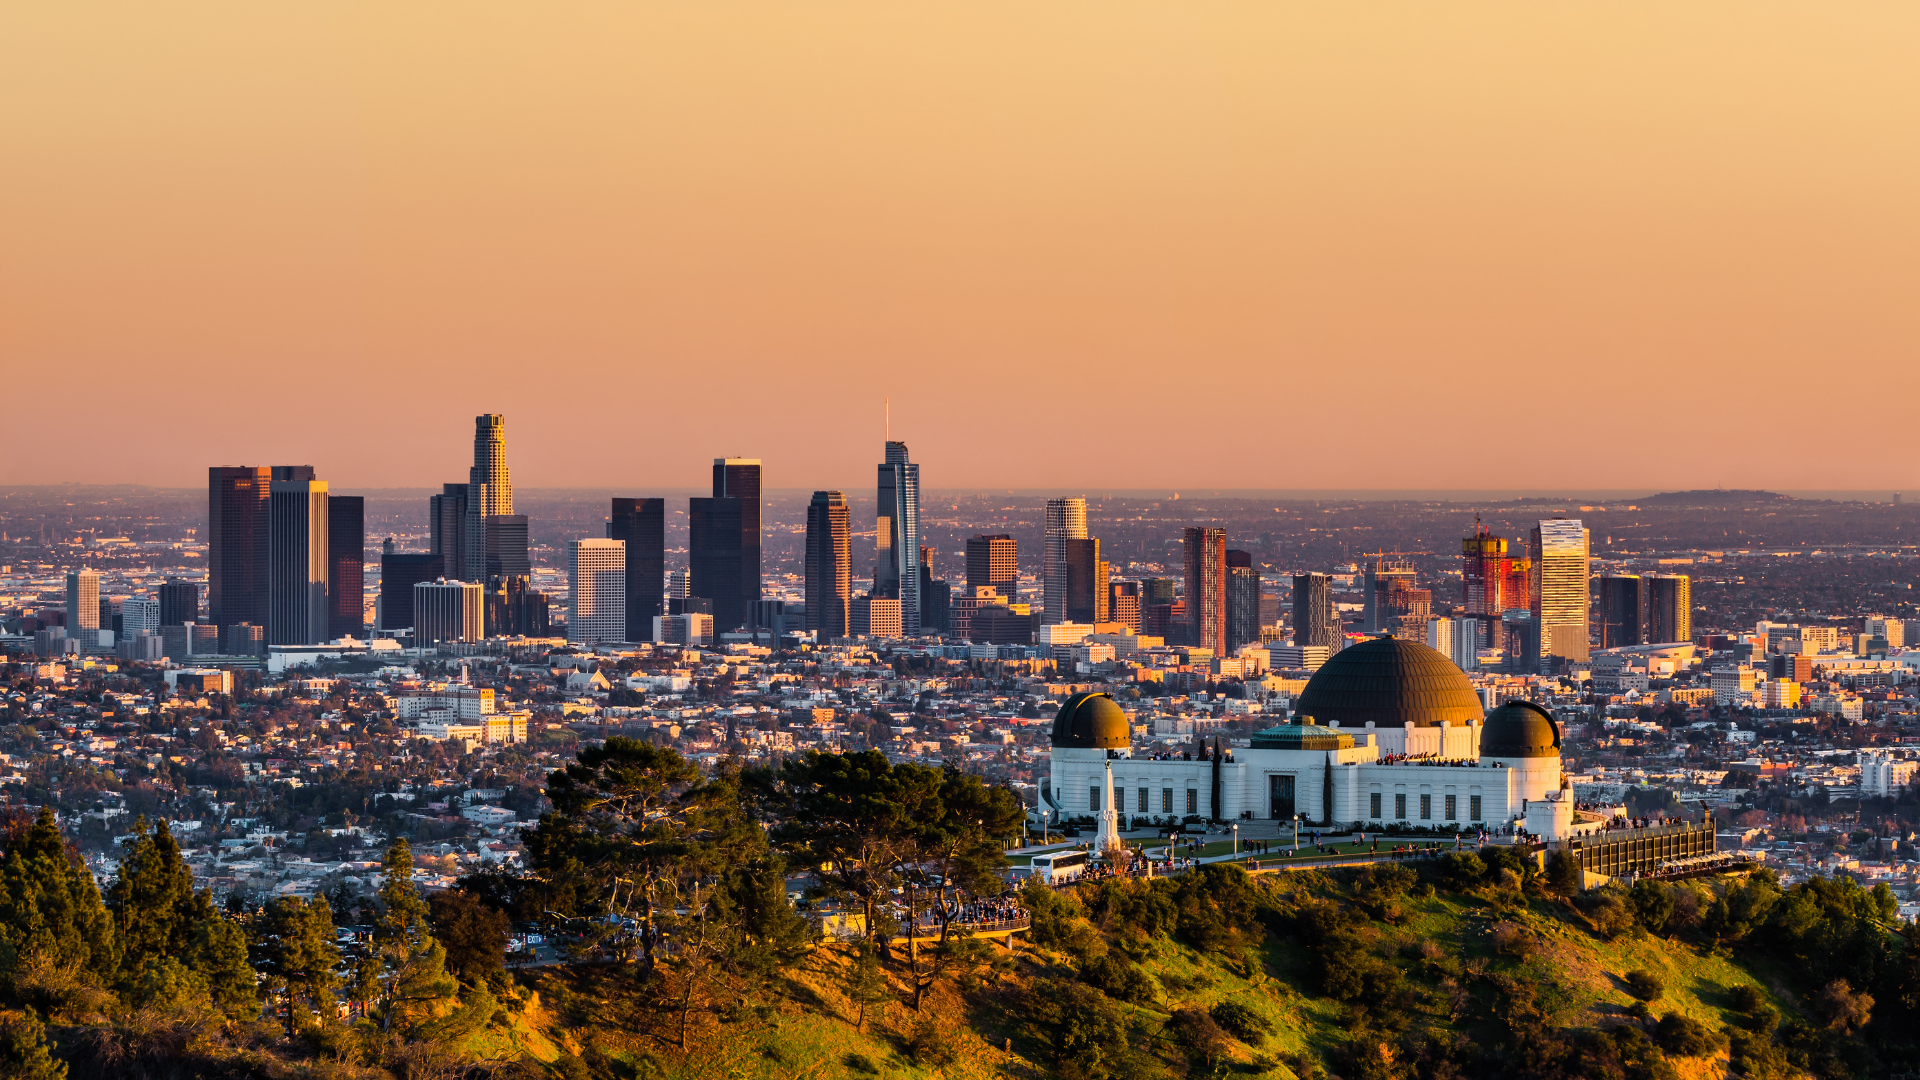 A view of Los Angeles with a focus on the Griffith Observatory in Hollywood.